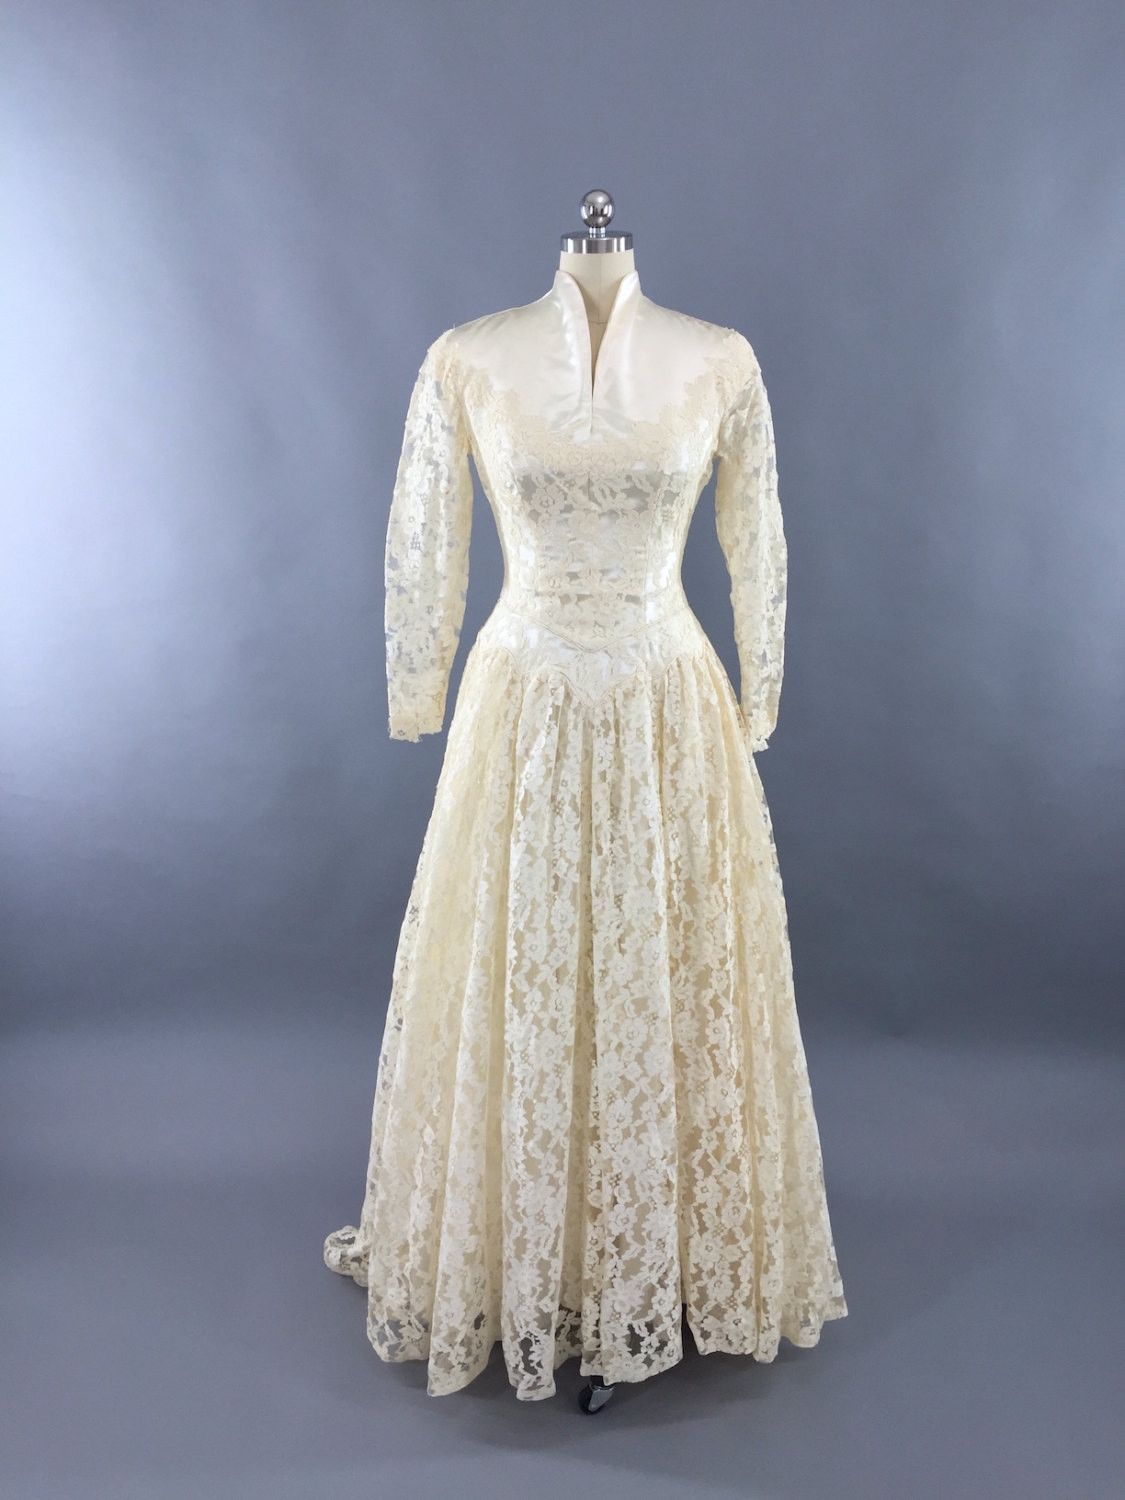 1950s Vintage Ivory Lace and Satin Wedding Dress